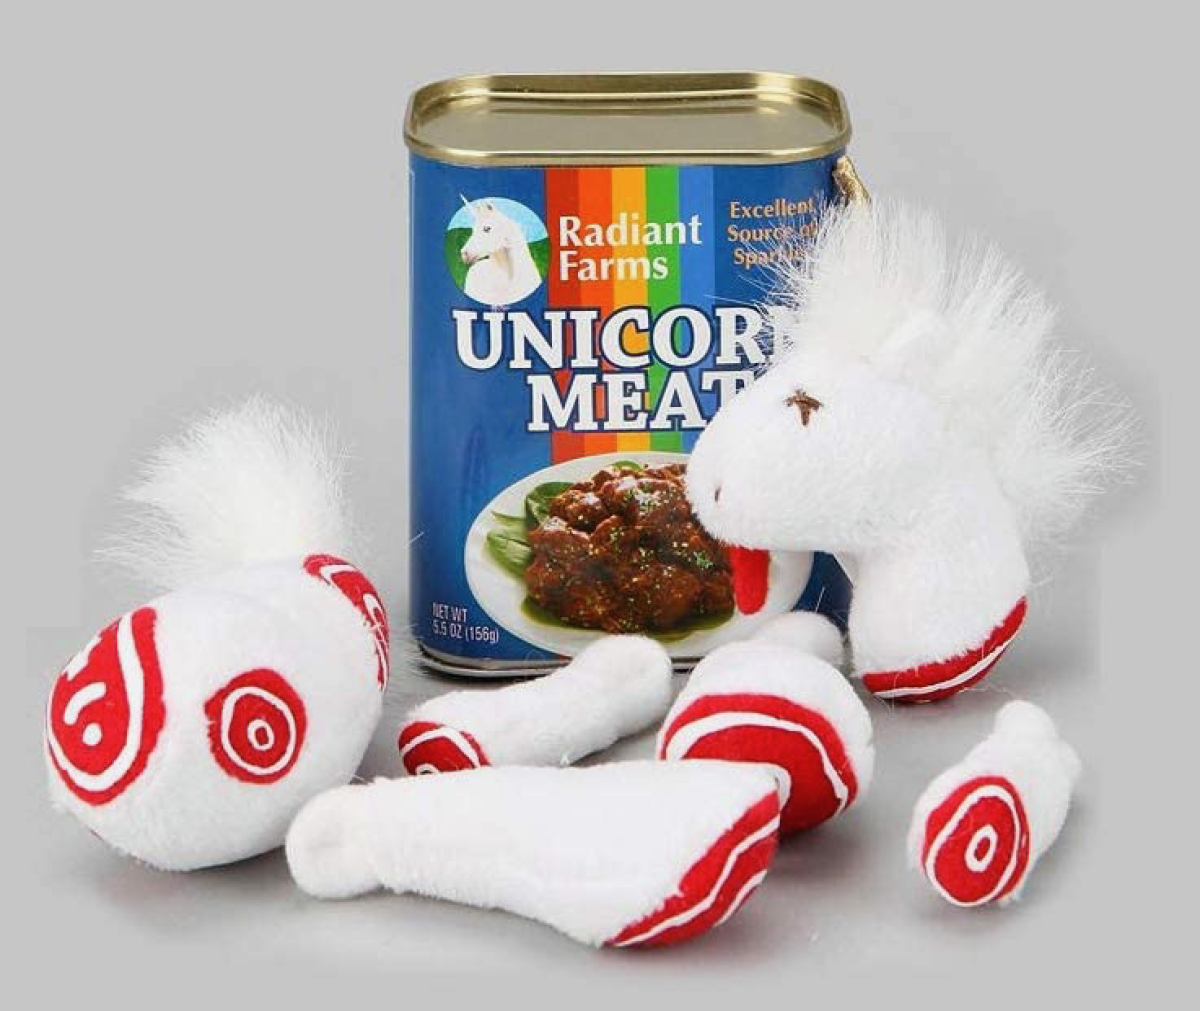 Unicorn meat.jpg